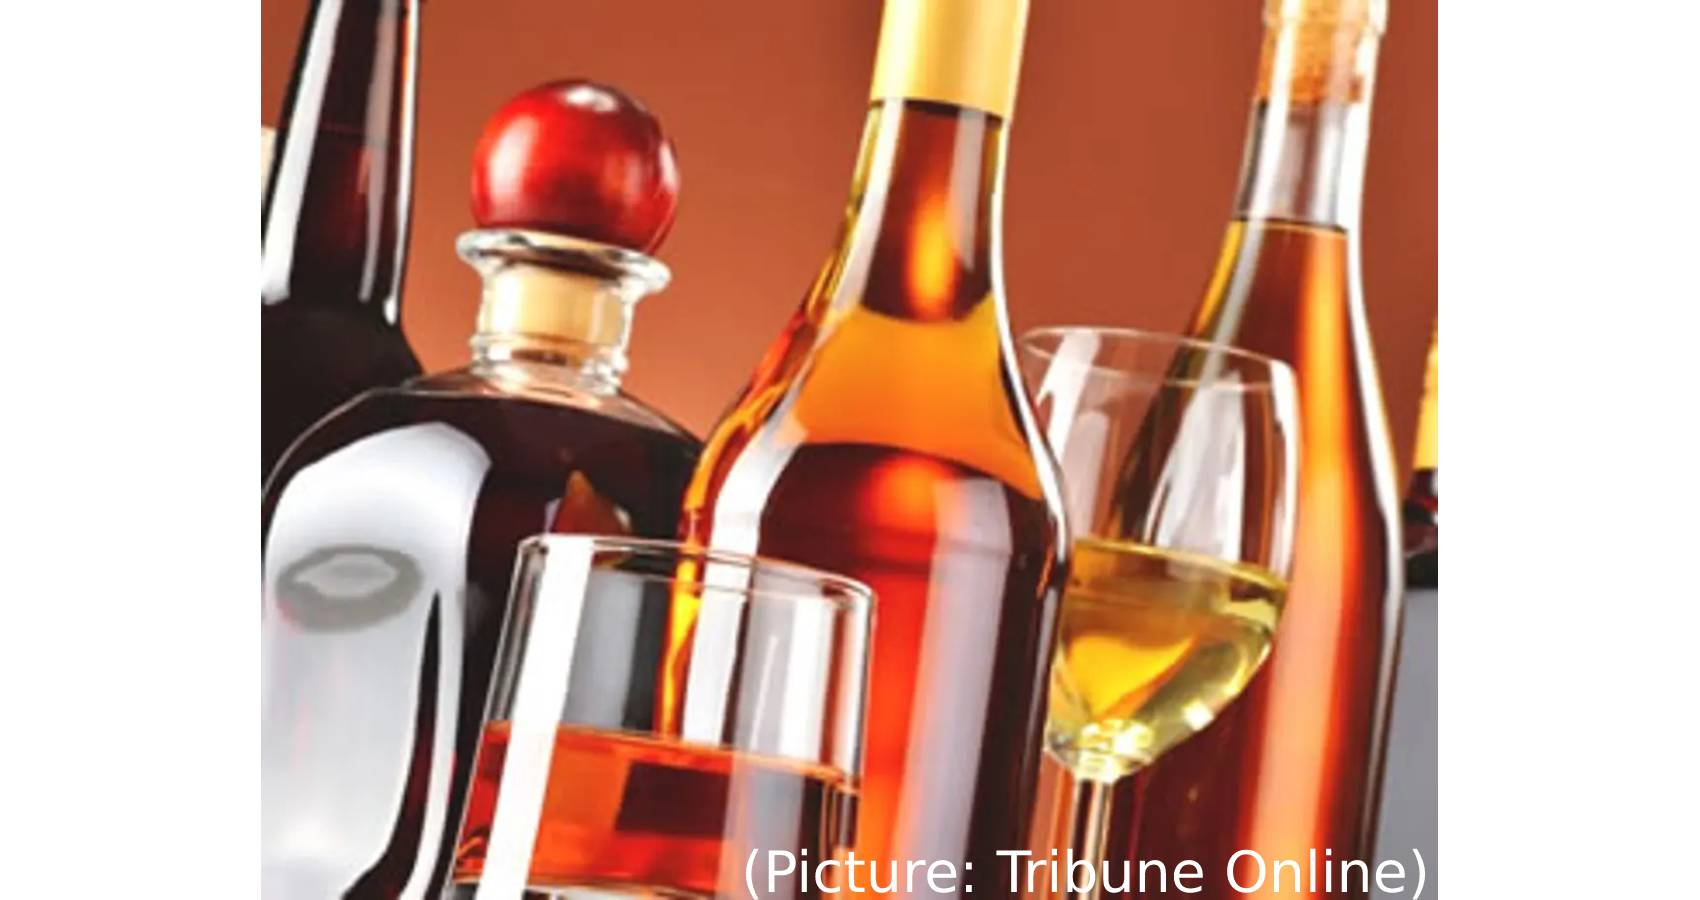 Over 740,000 Cancers A Year Linked To Alcohol Use